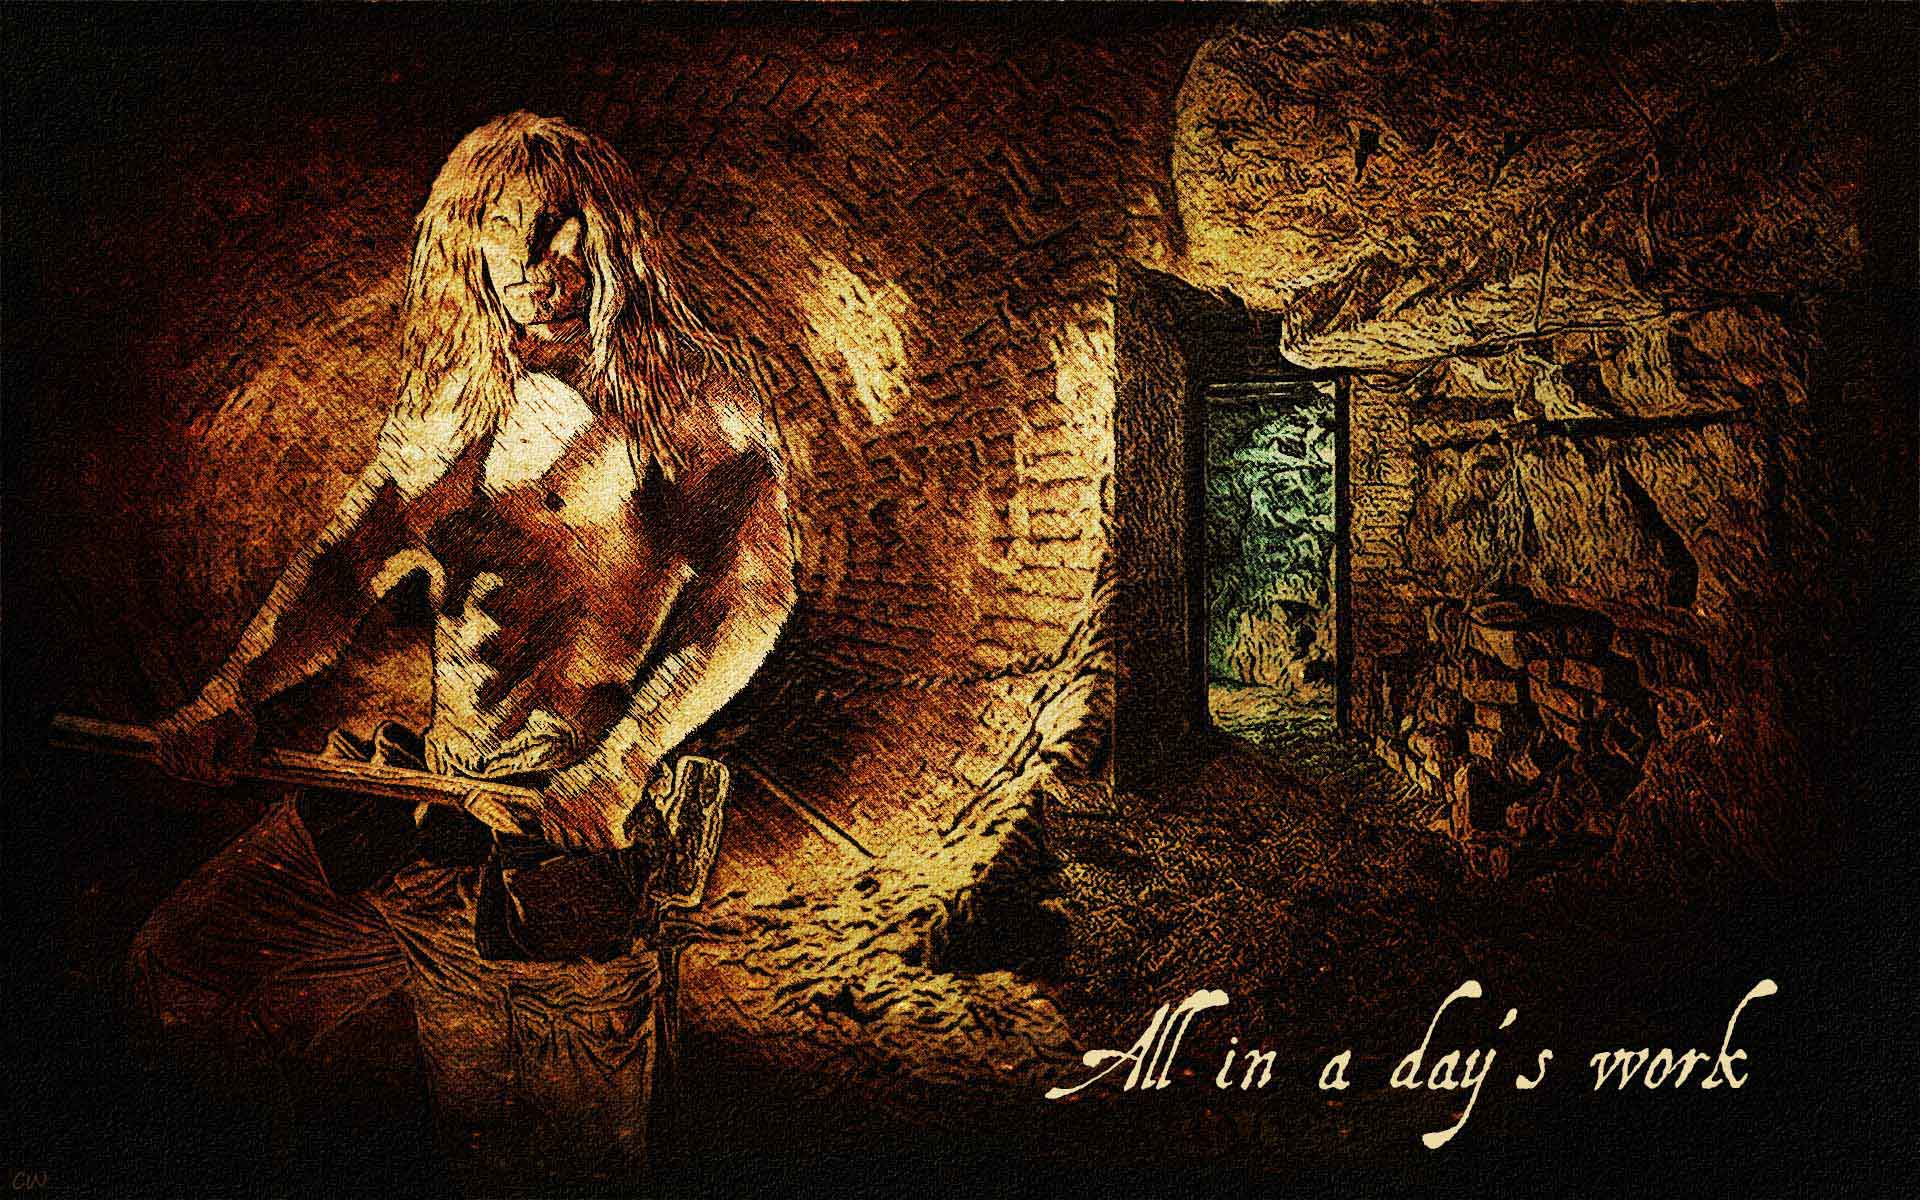 Vincent shirtless holding a heavy hammer, behind him rubble in a tunnel. Text reads: All in a day's work